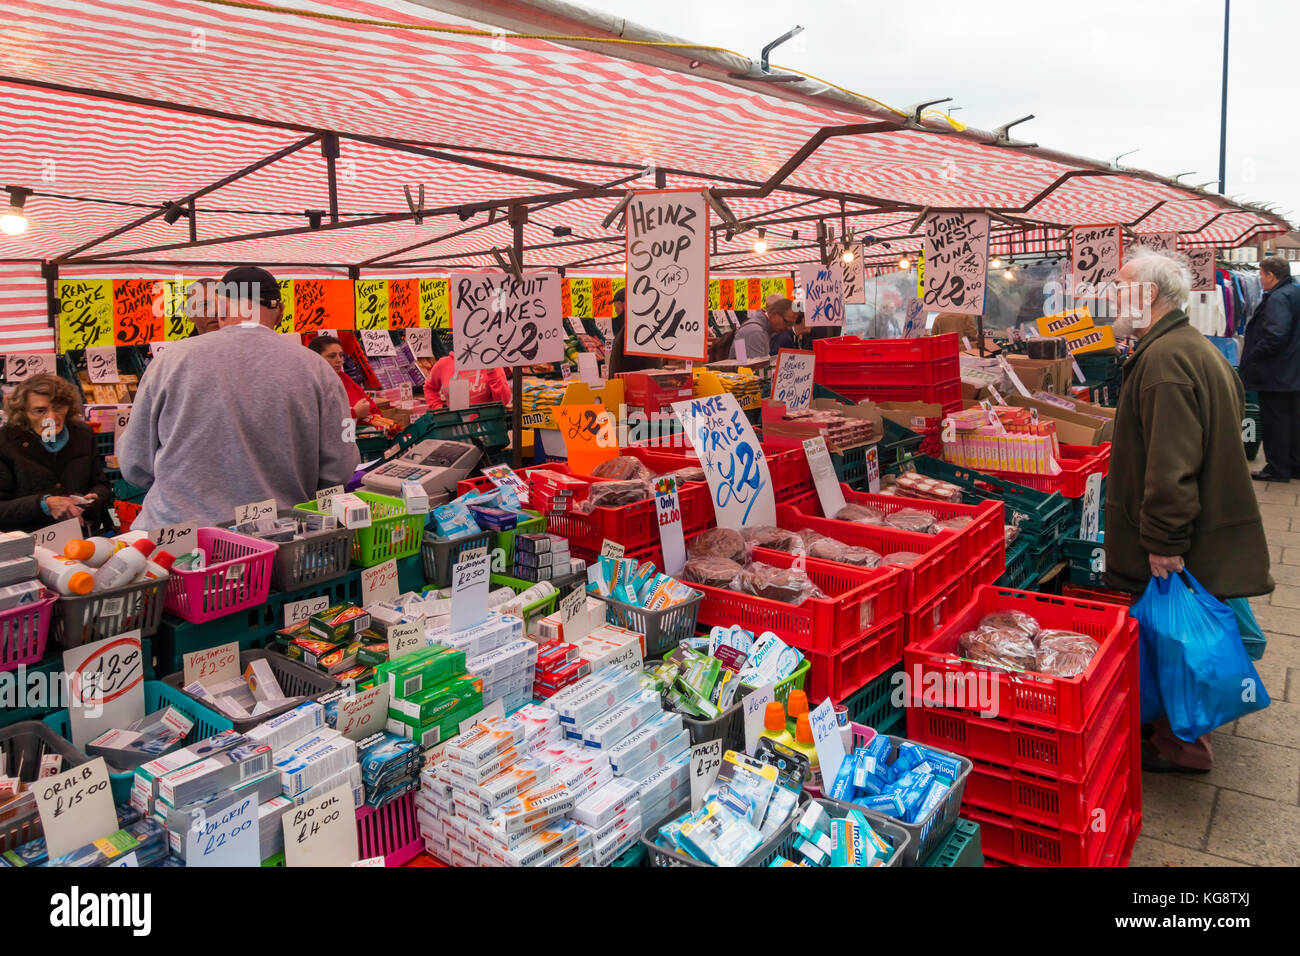 Stallholders Display Stockfotos & Stallholders Display Bilder - Alamy